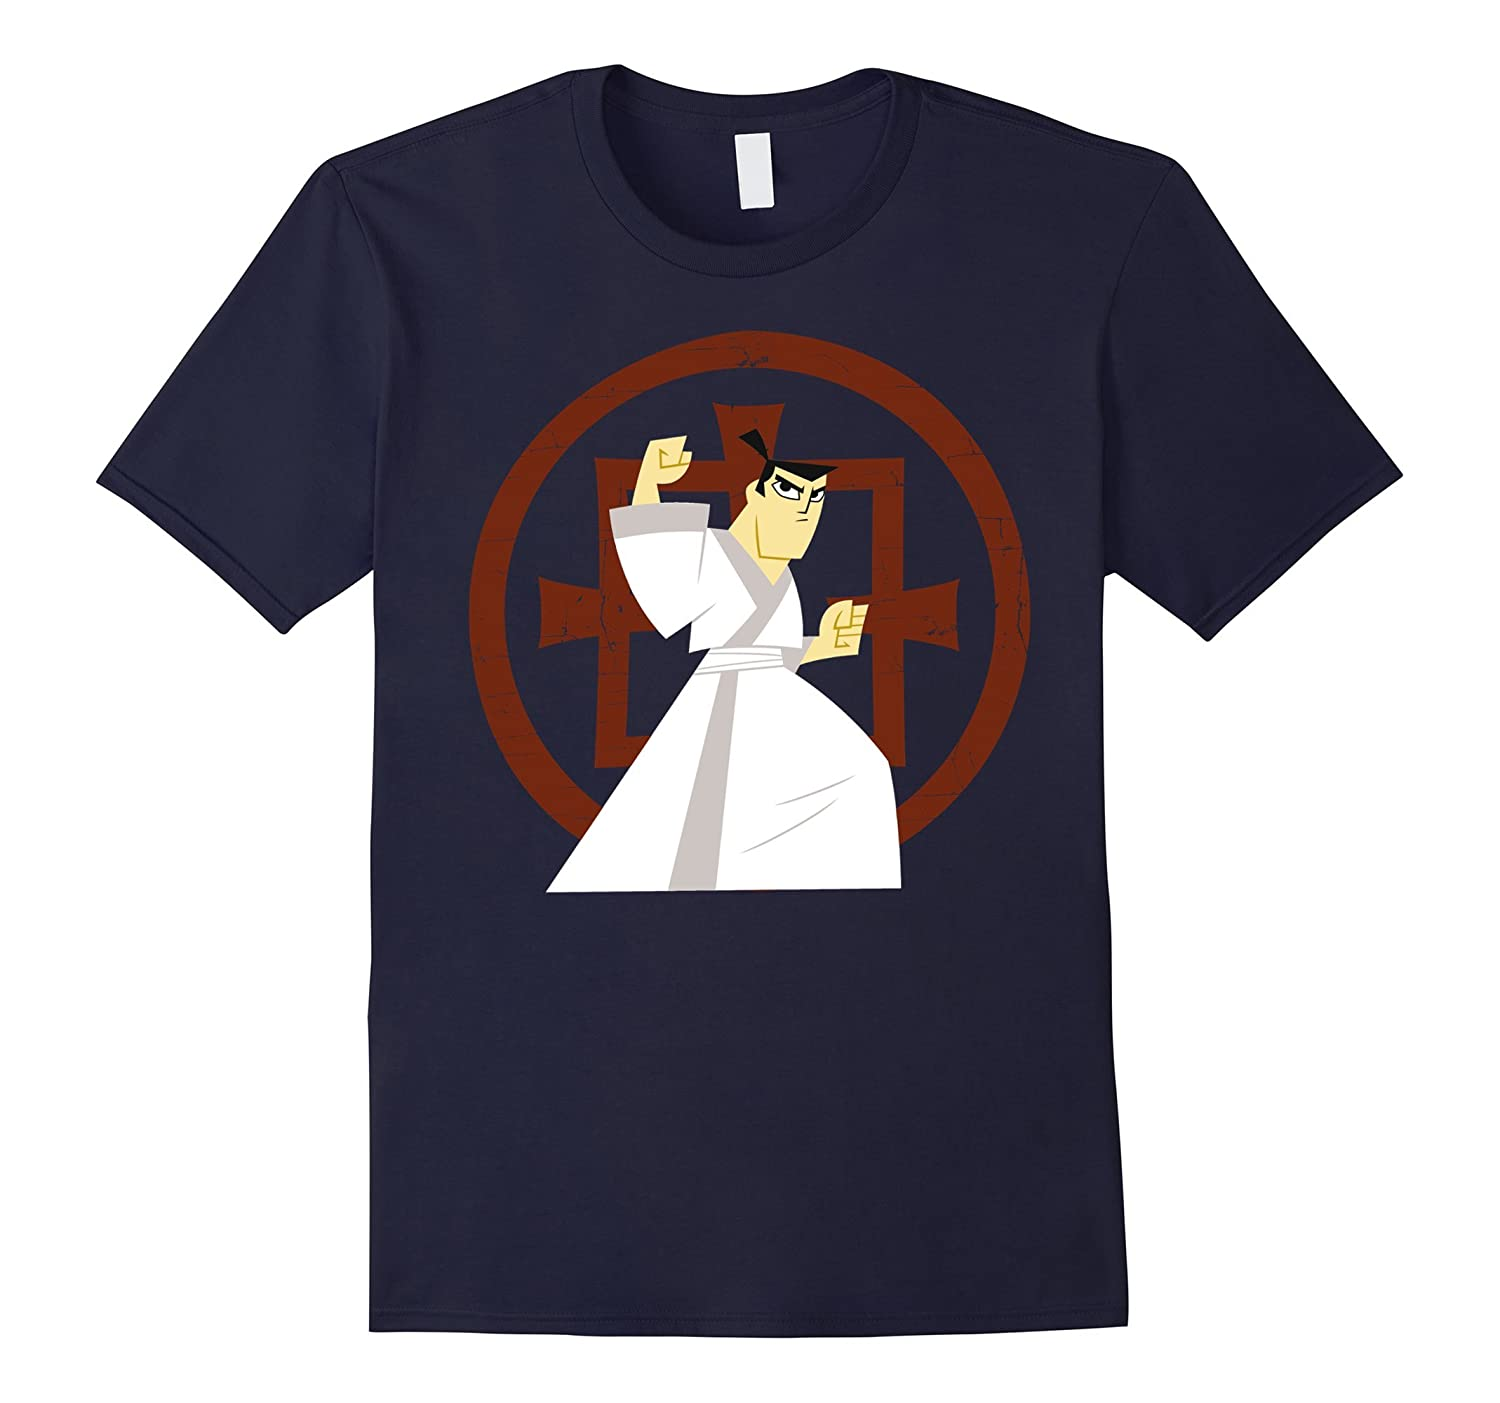 CN Samurai Jack Fight Pose Ancient Symbol Graphic T-Shirt-CL